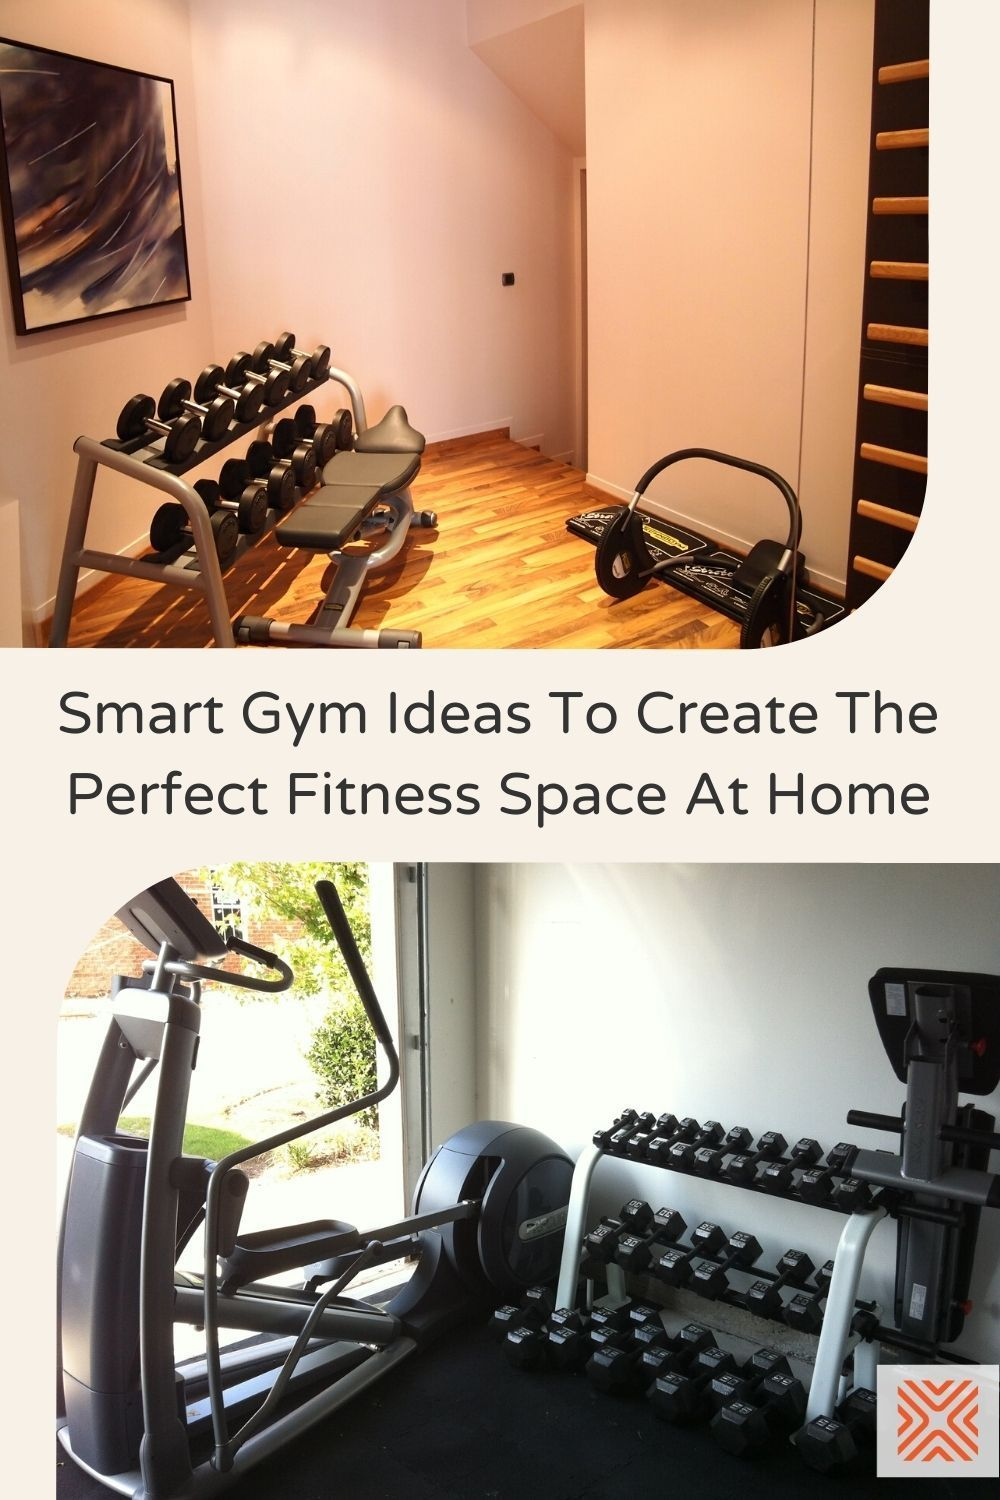 Started working out at home? Consider turning a space in your home into your private gym! You don't need a huge space or a home renovation to achieve this, try our 8 small home gym ideas and start working out the right way.